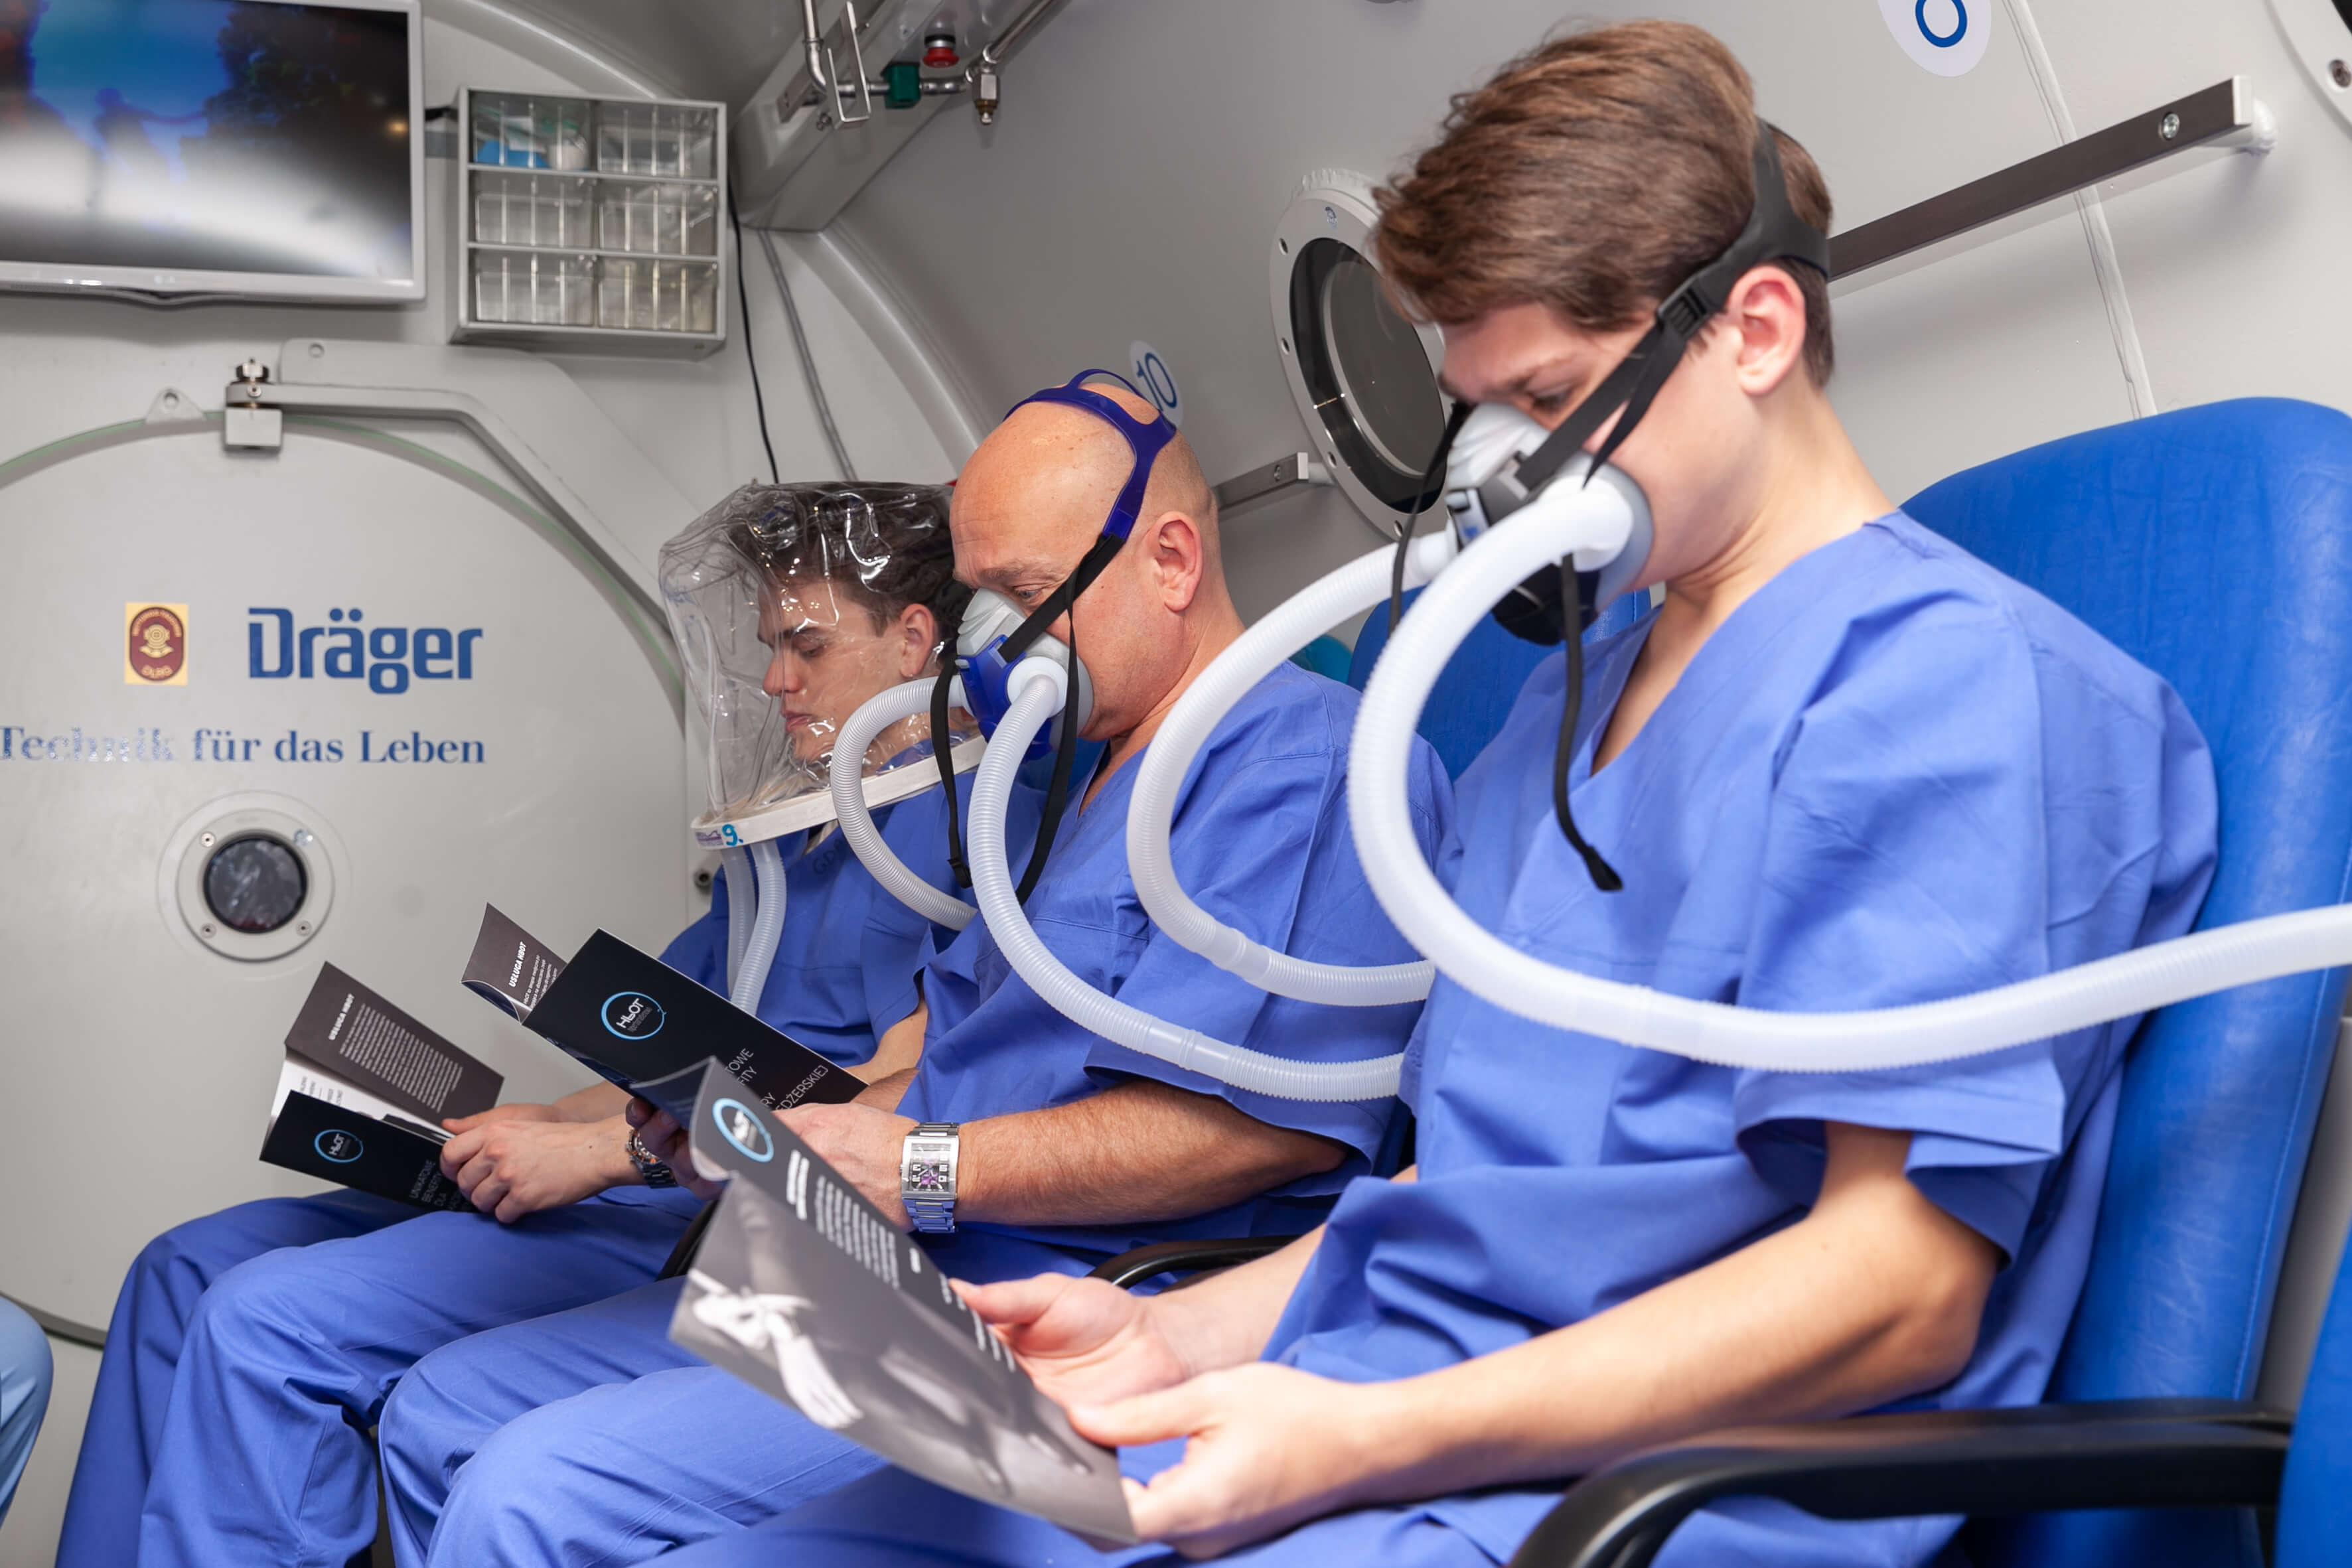 Centrum Hiperbarii Tlenowej i Leczenia Ran 9 1 - What can be the effects of hyperbaric oxygen therapy at the Hyperbaric Oxygen Therapy and Wound Healing Centre in Gdańsk?